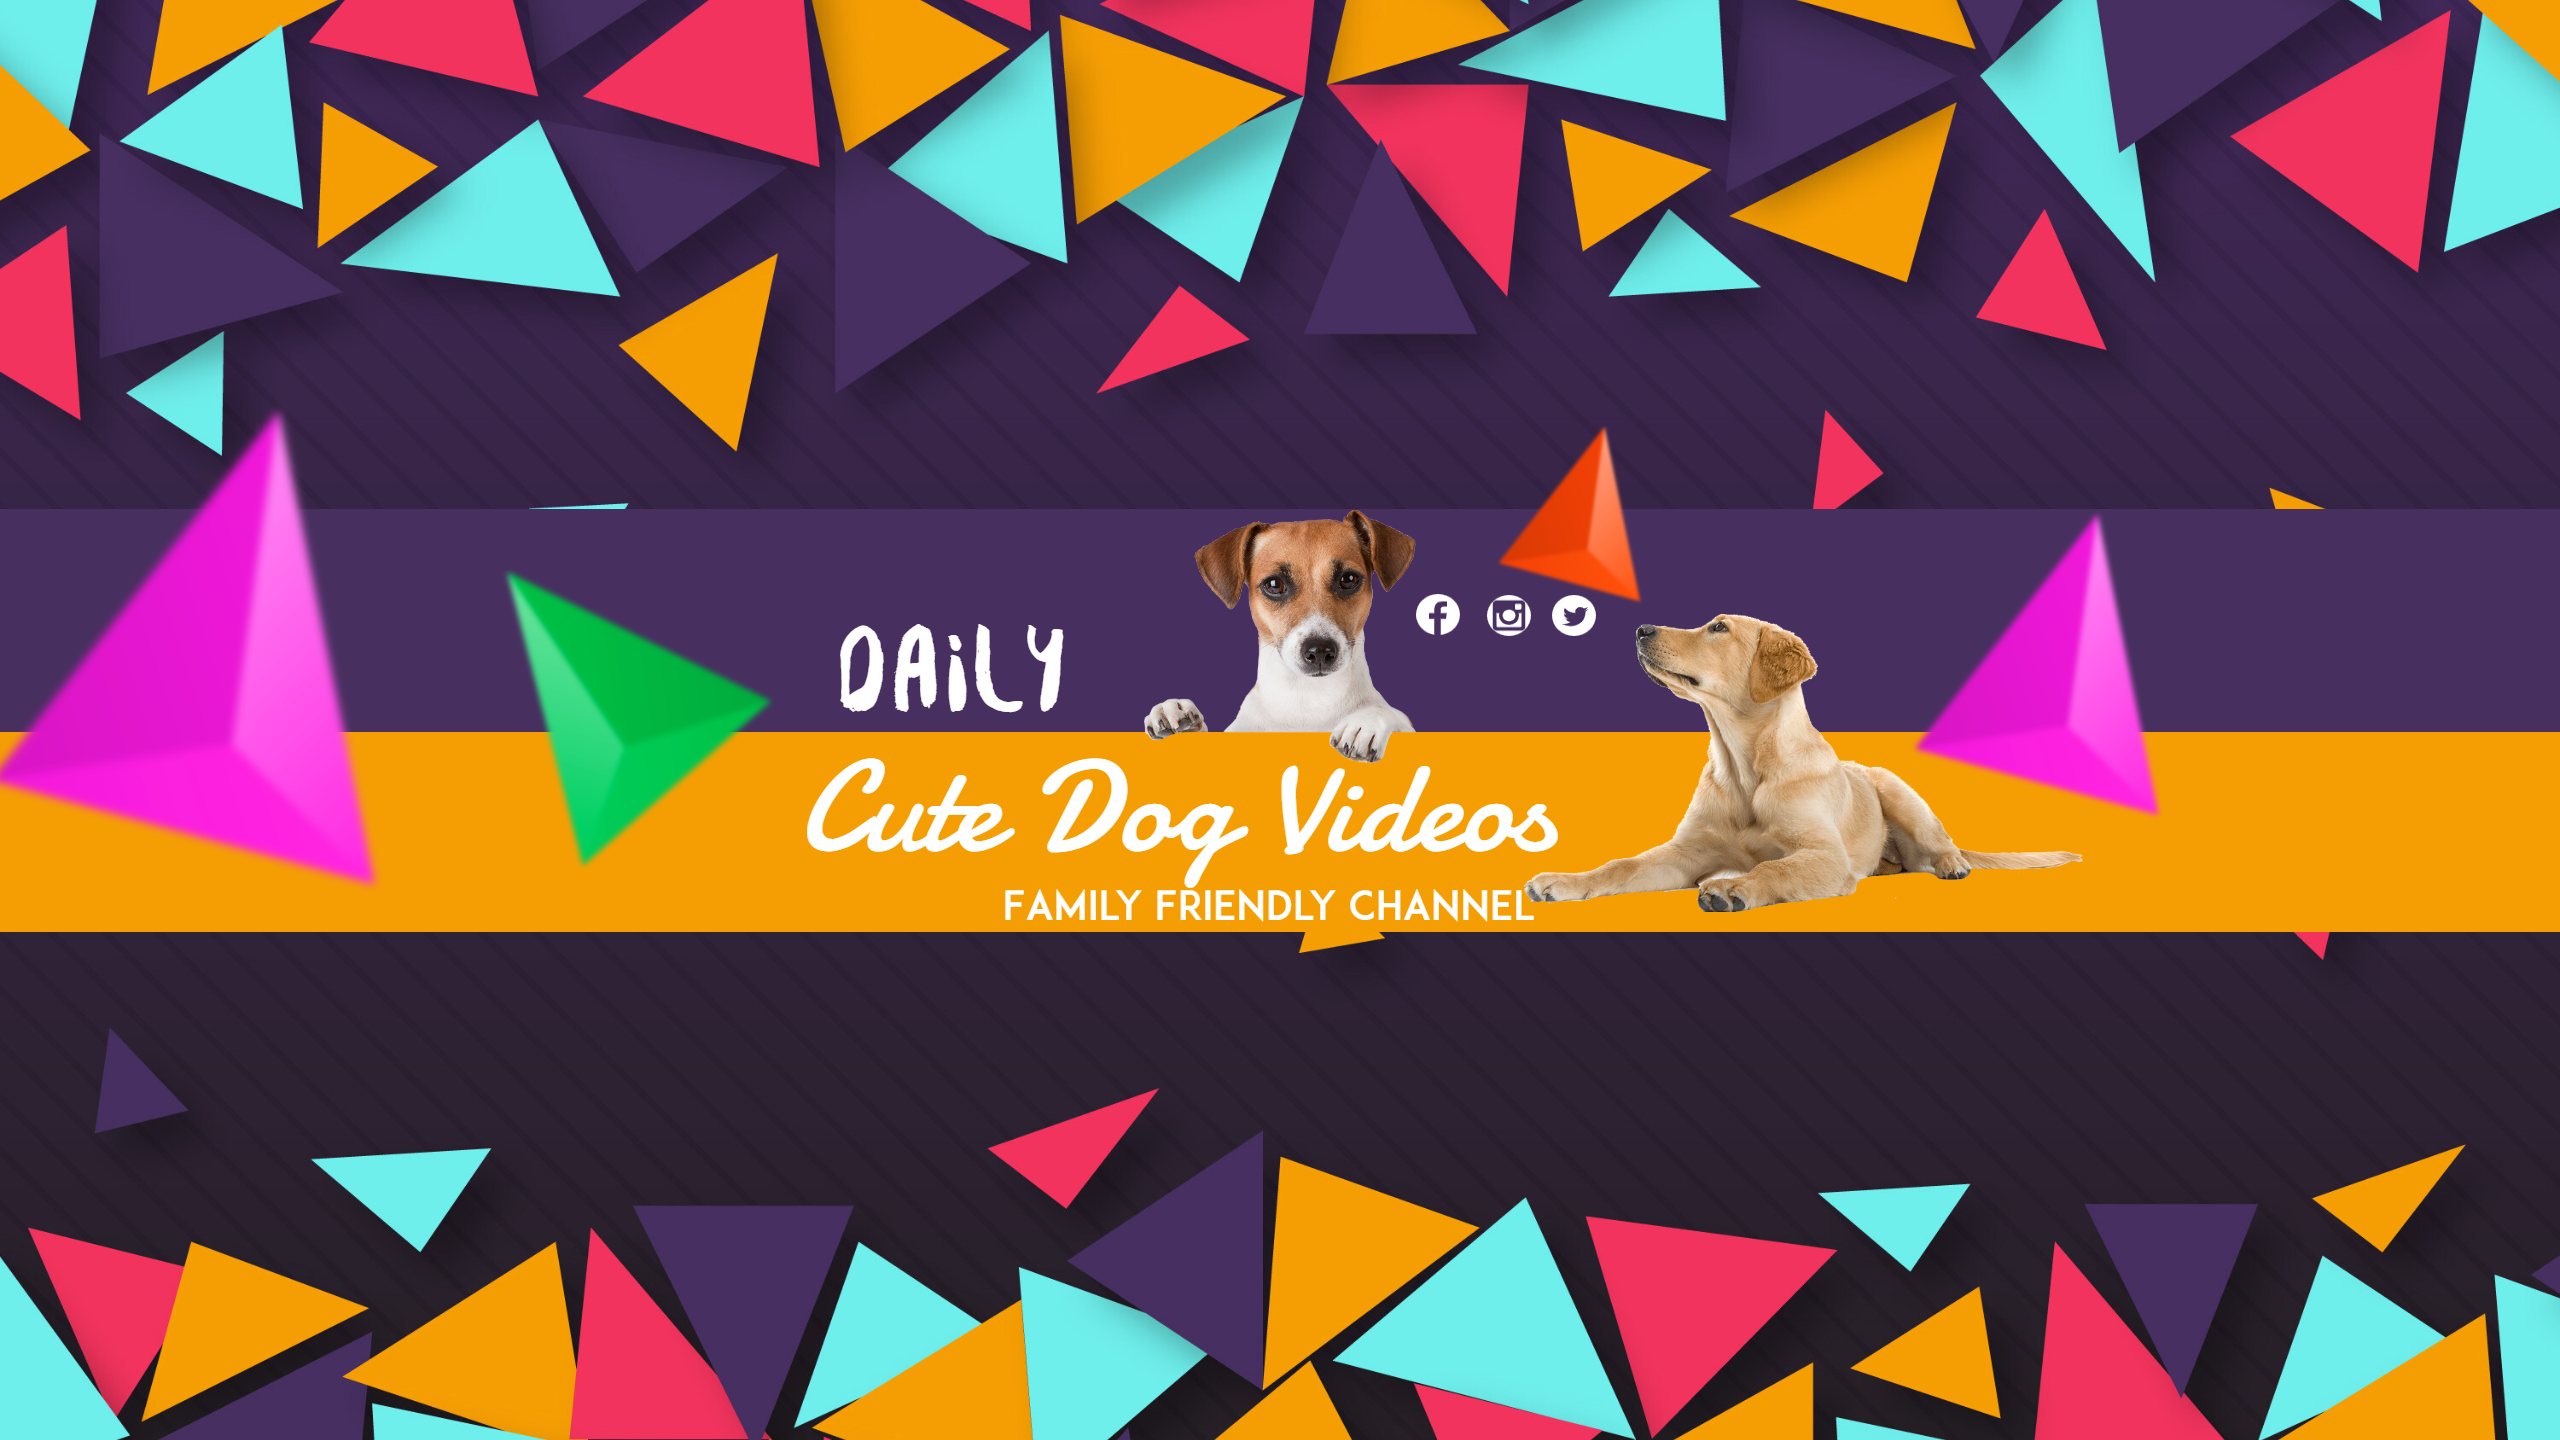 Youtube Dog Channel  Banner Design  Template